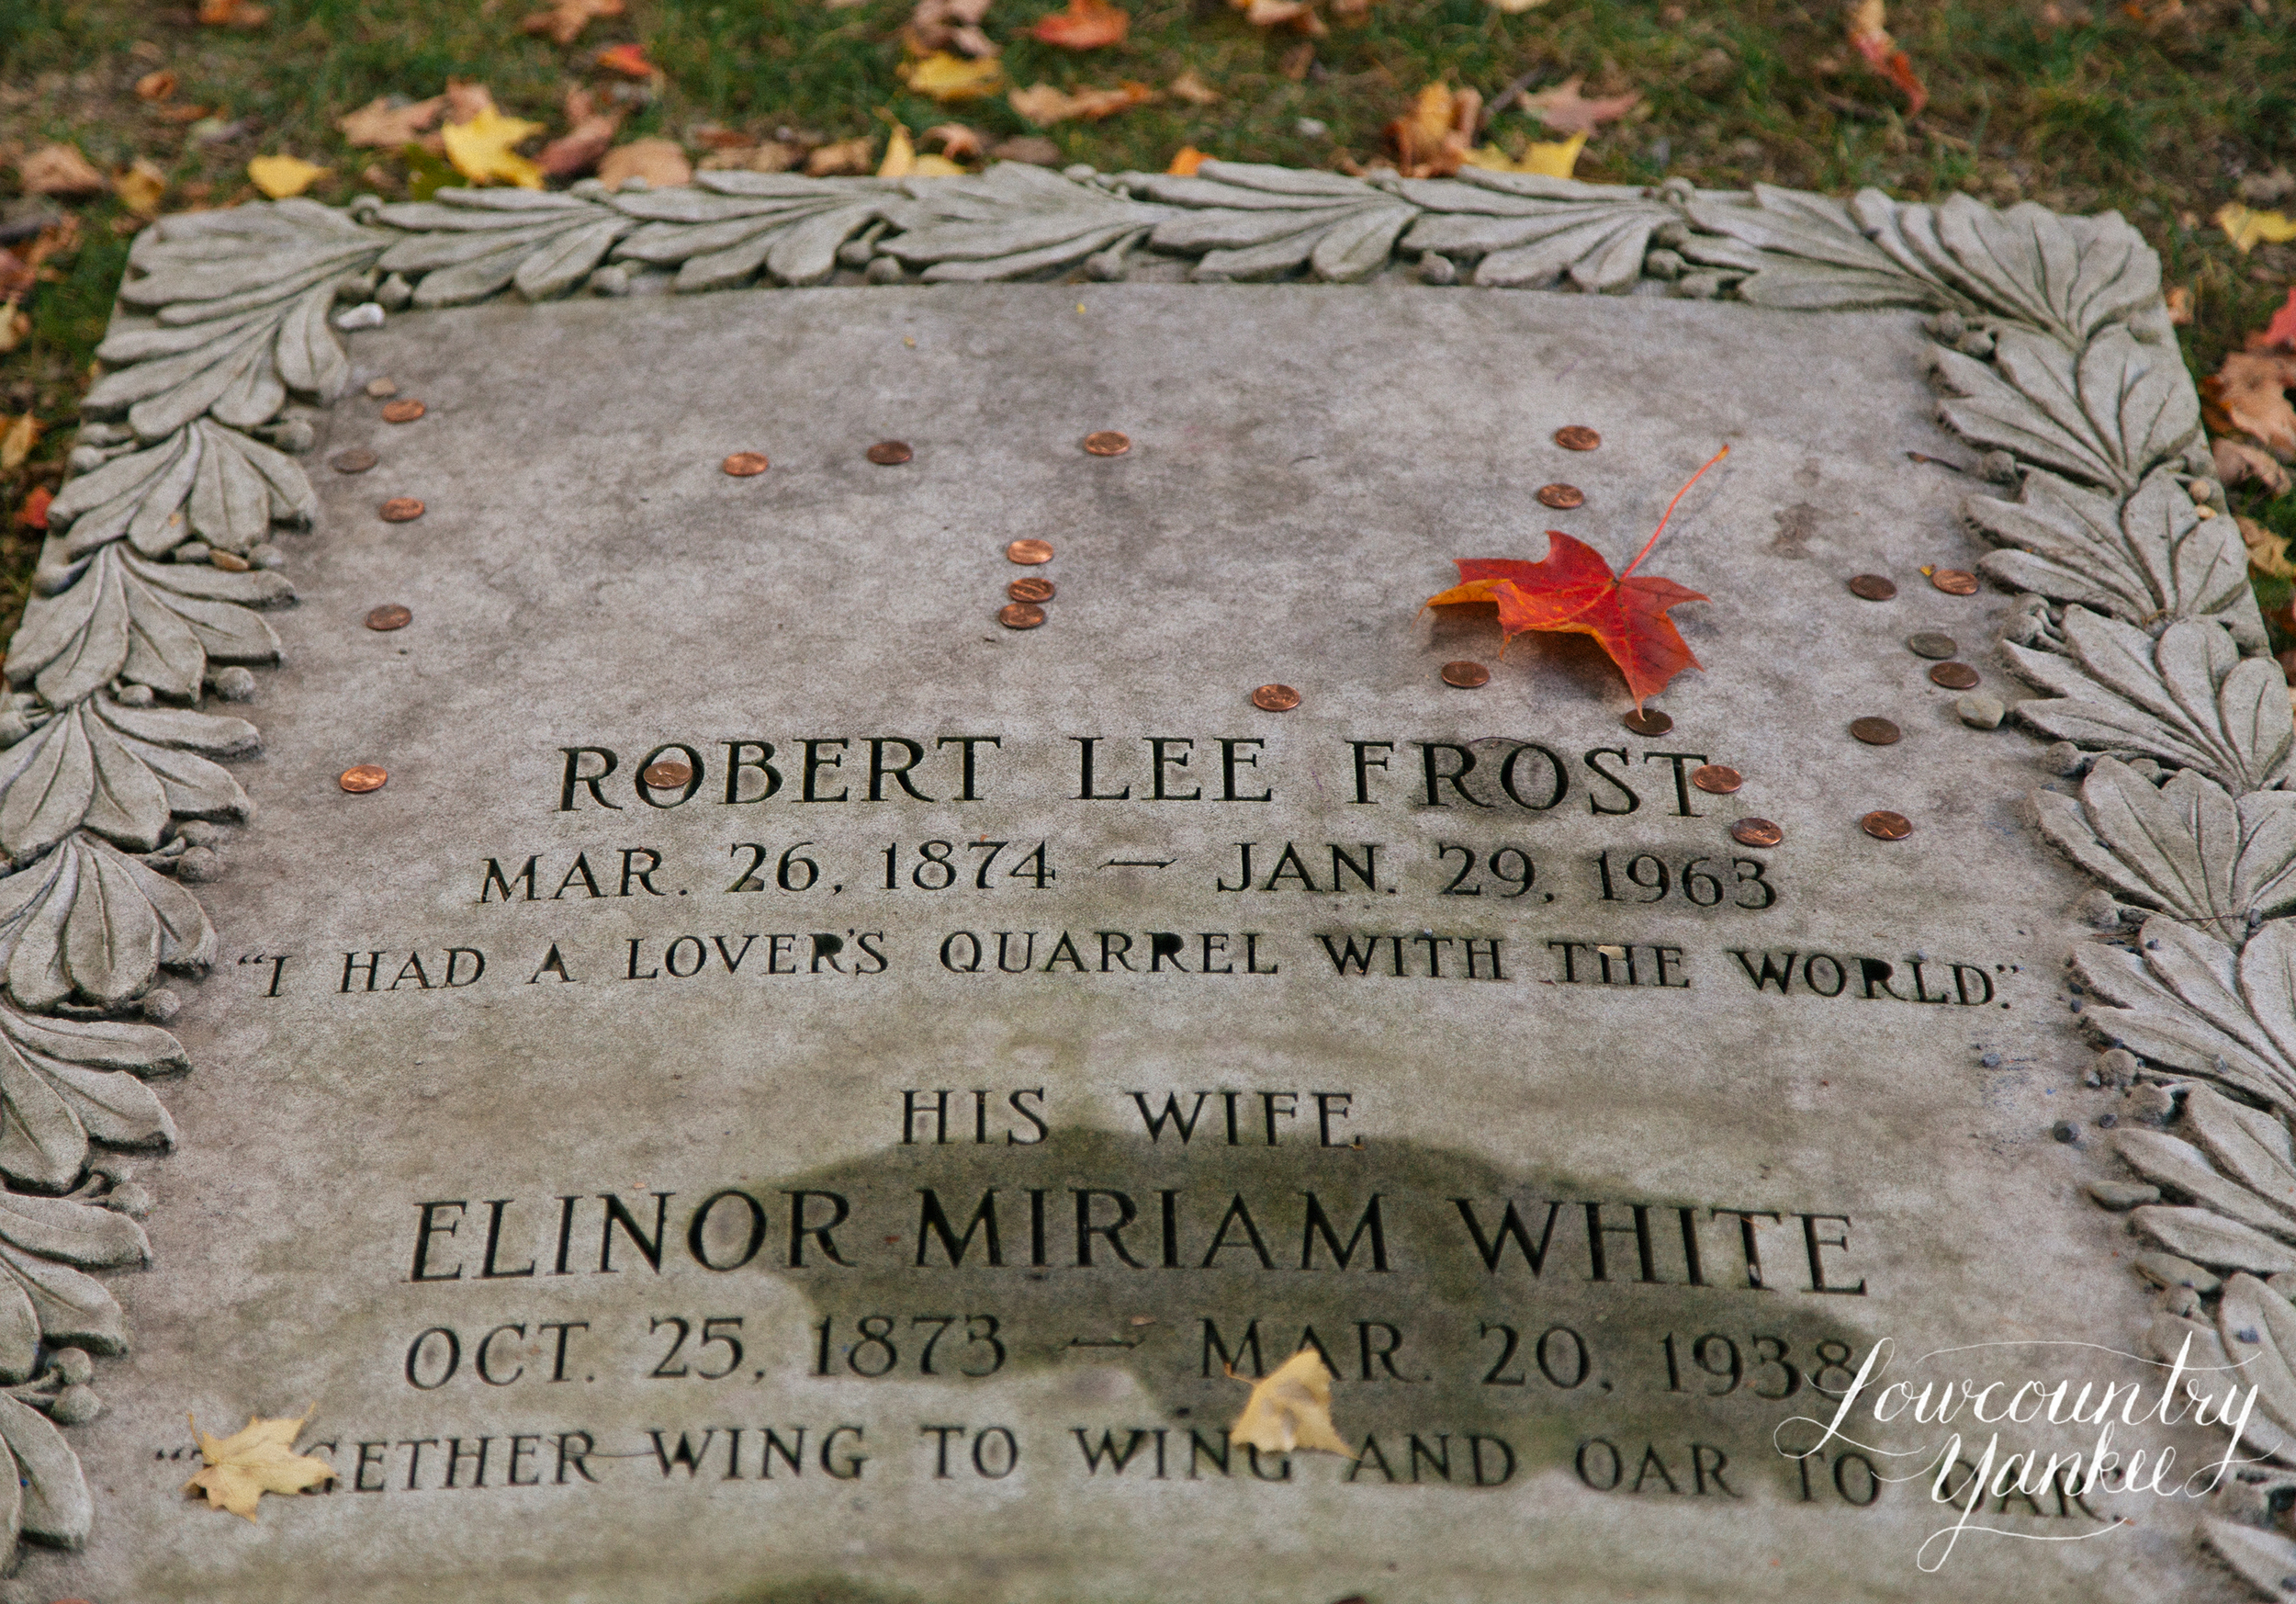 Robert Frost's final resting place